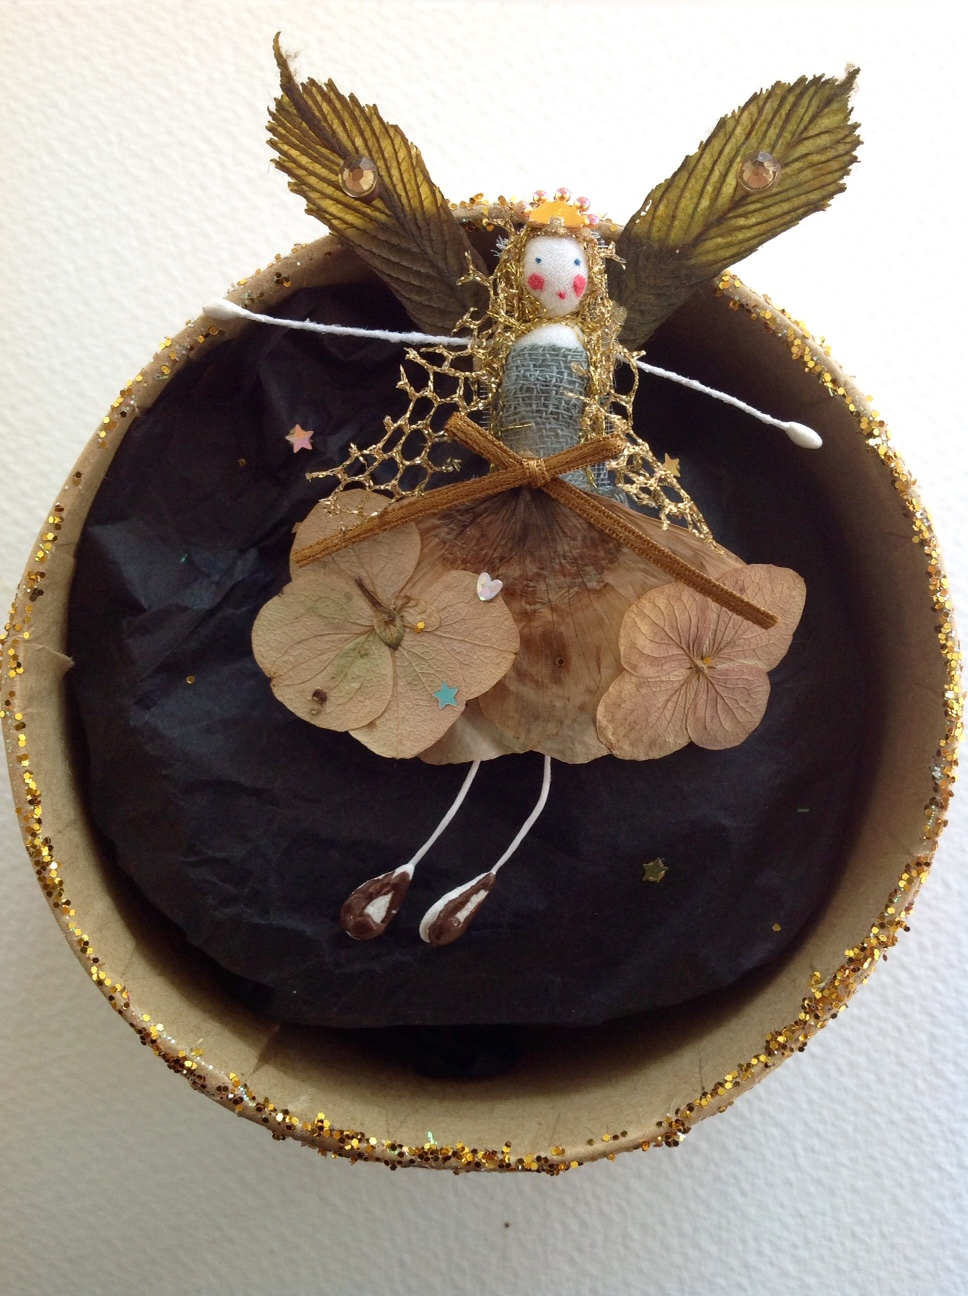 AUTUMN A 9cm fairy in a box with her name in the lid. Dressed in poppy and lace cap flowers and chestnut leaves. £15 plus £3.50 p&p